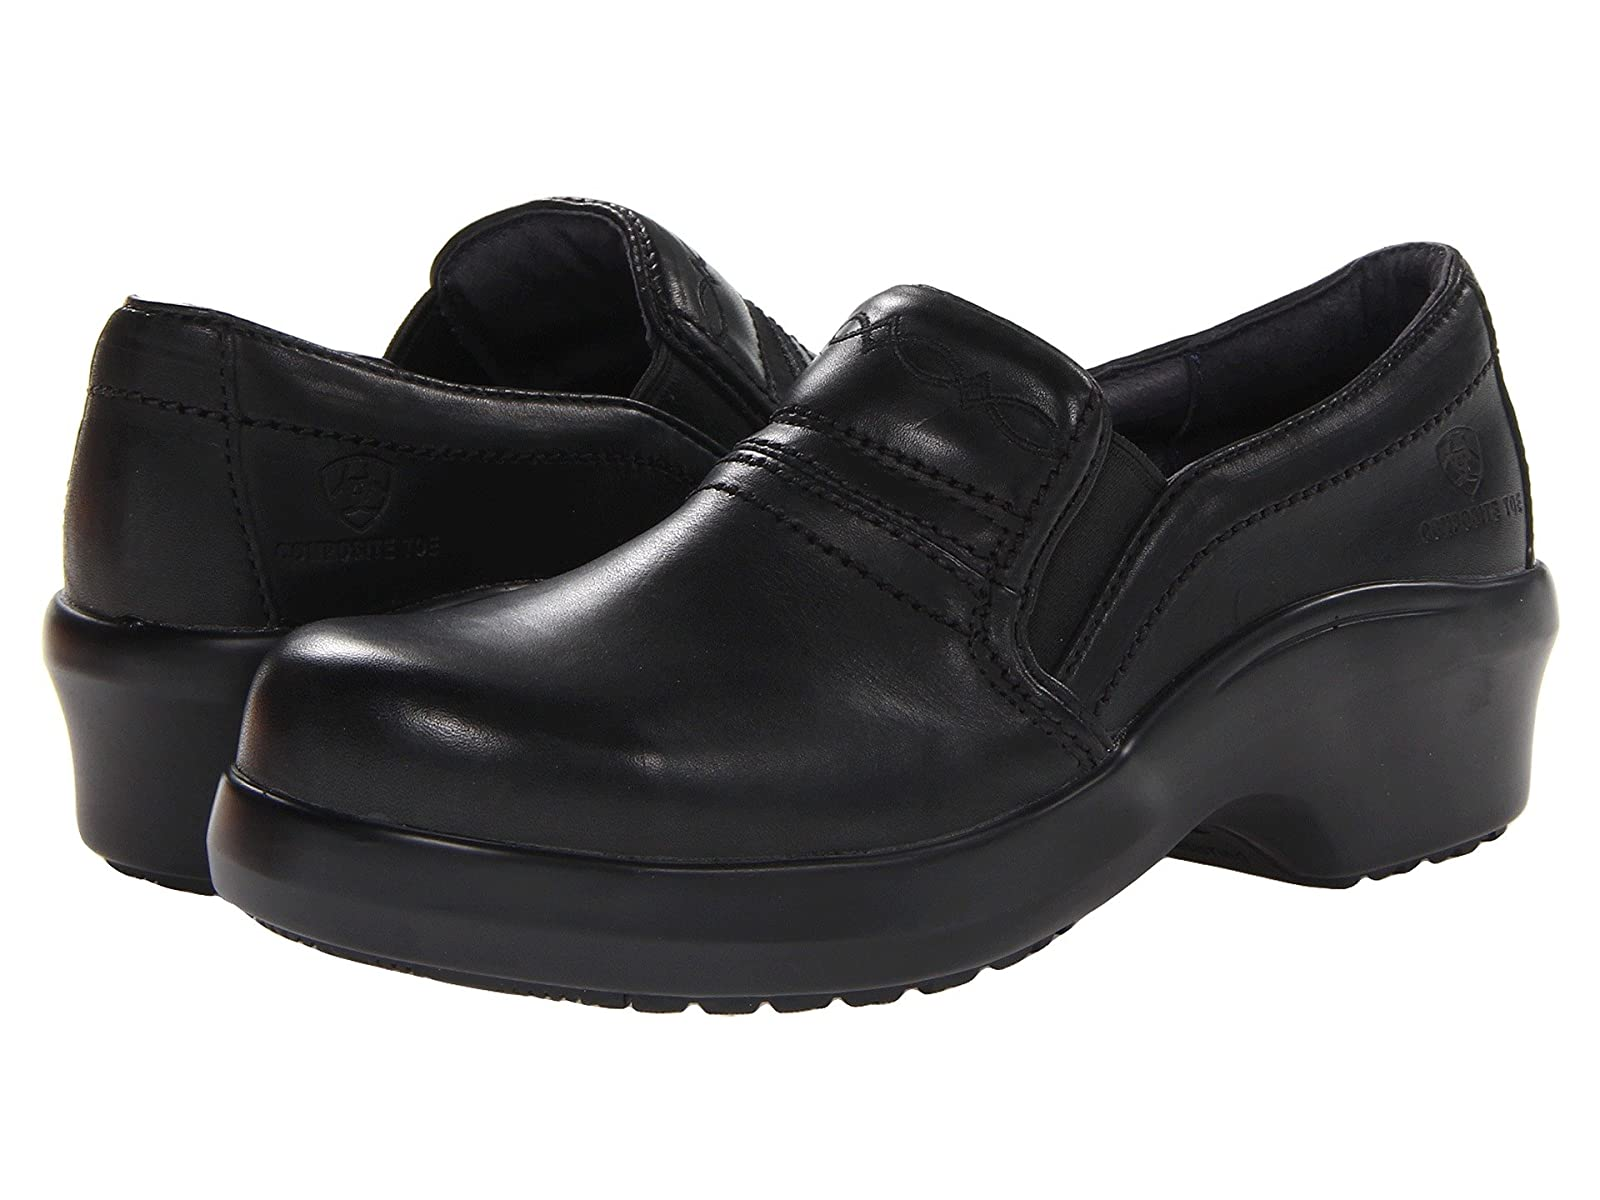 Ariat Expert Safety Clog Composite ToeEconomical and quality shoes